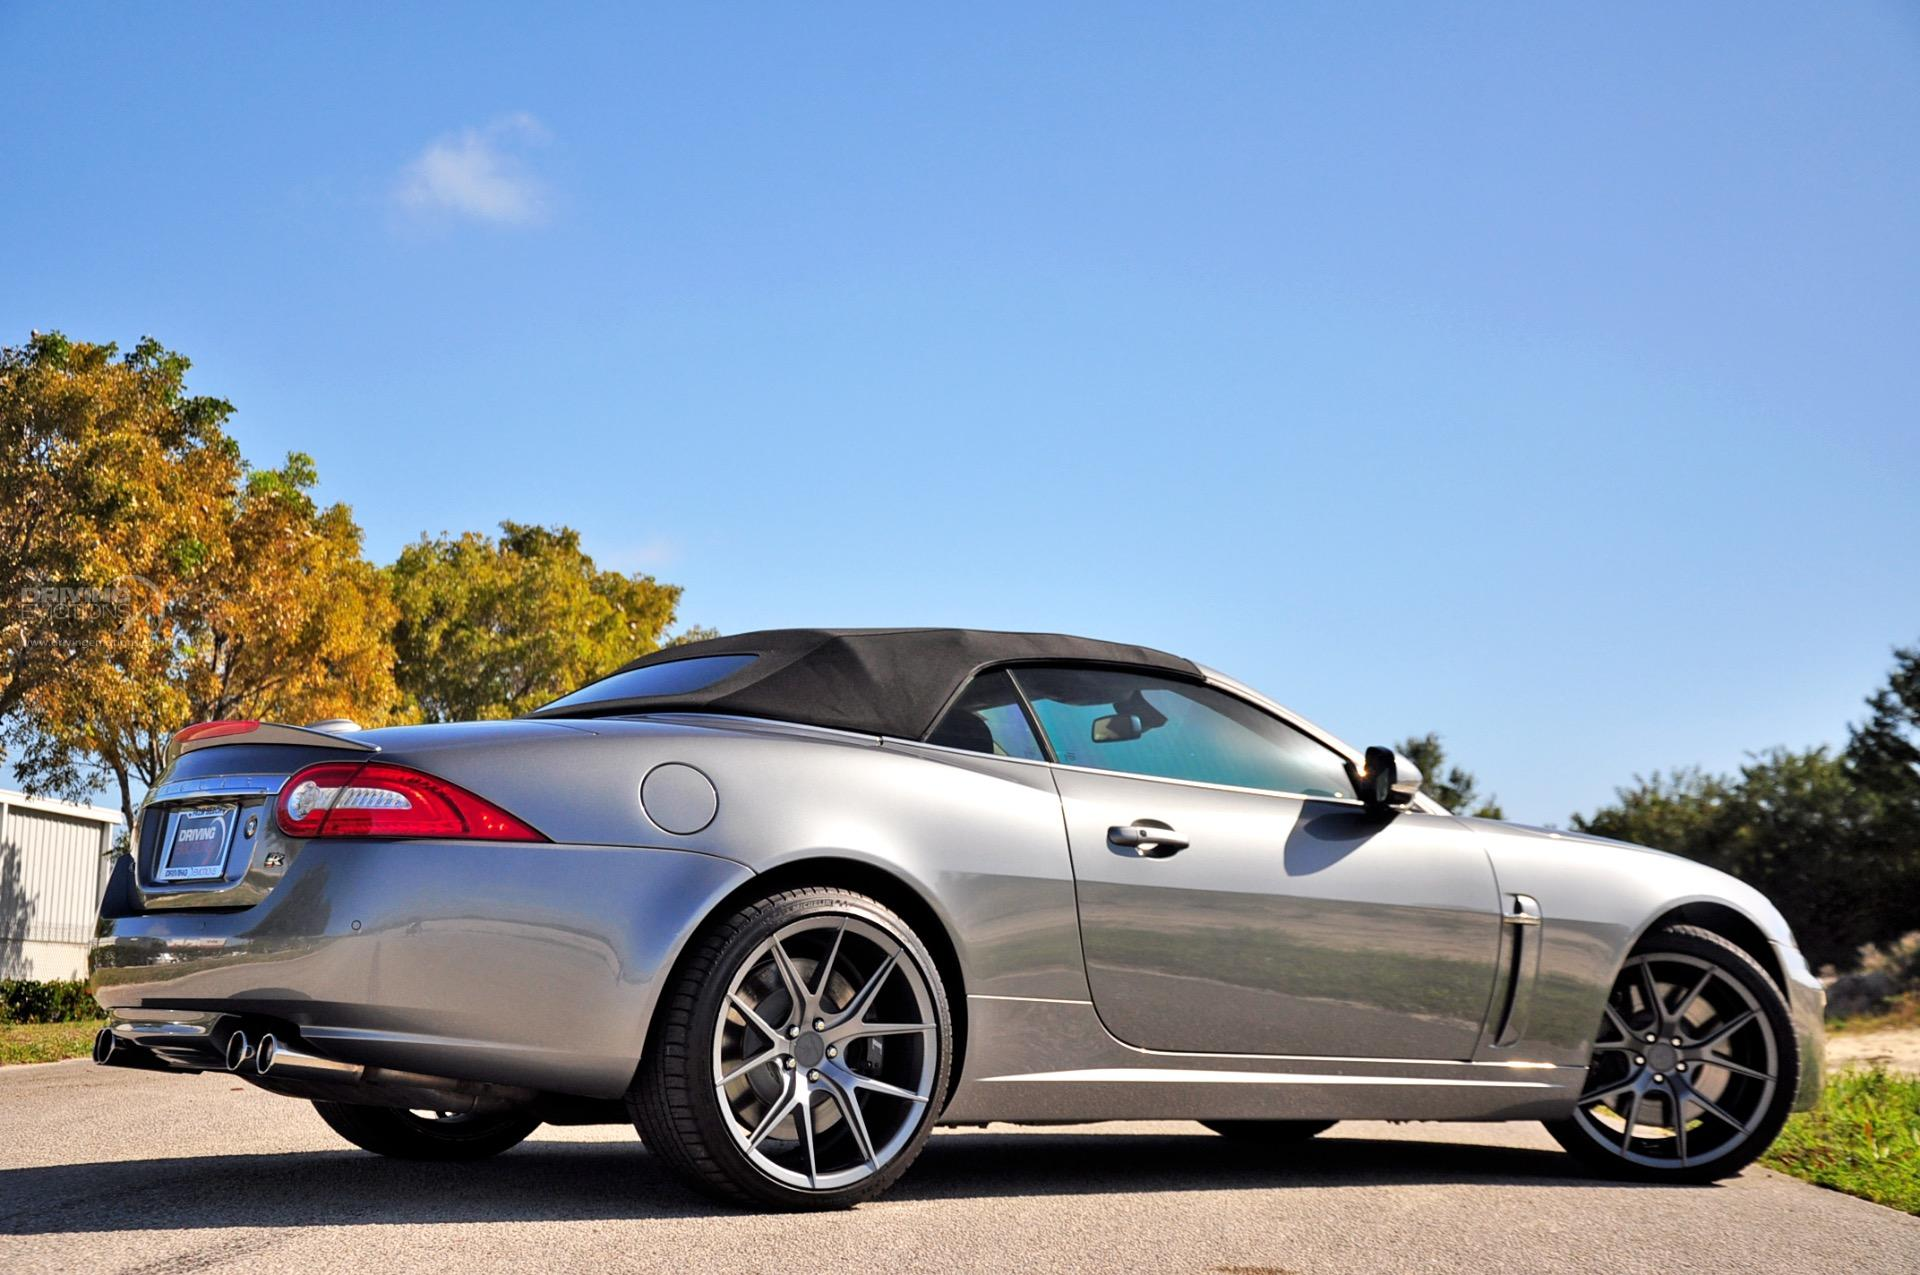 2010 Jaguar XKR Convertible XKR Stock # 5839 for sale near